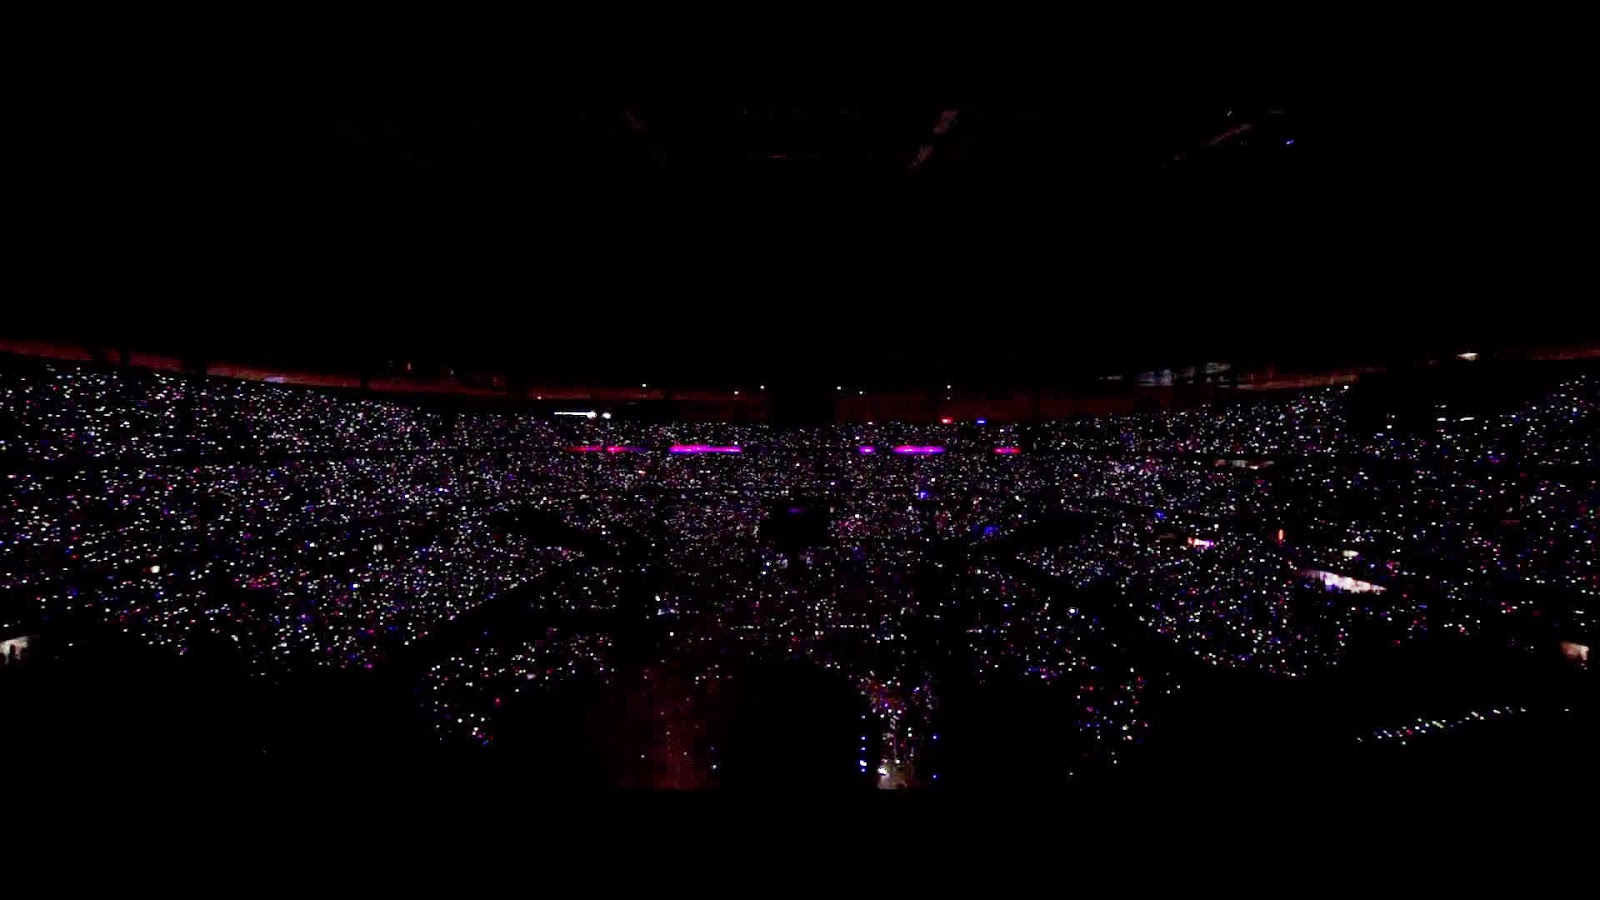 Coldplay - Paradise (Live 2012 from Paris) Wallpapers HD ScreenShots